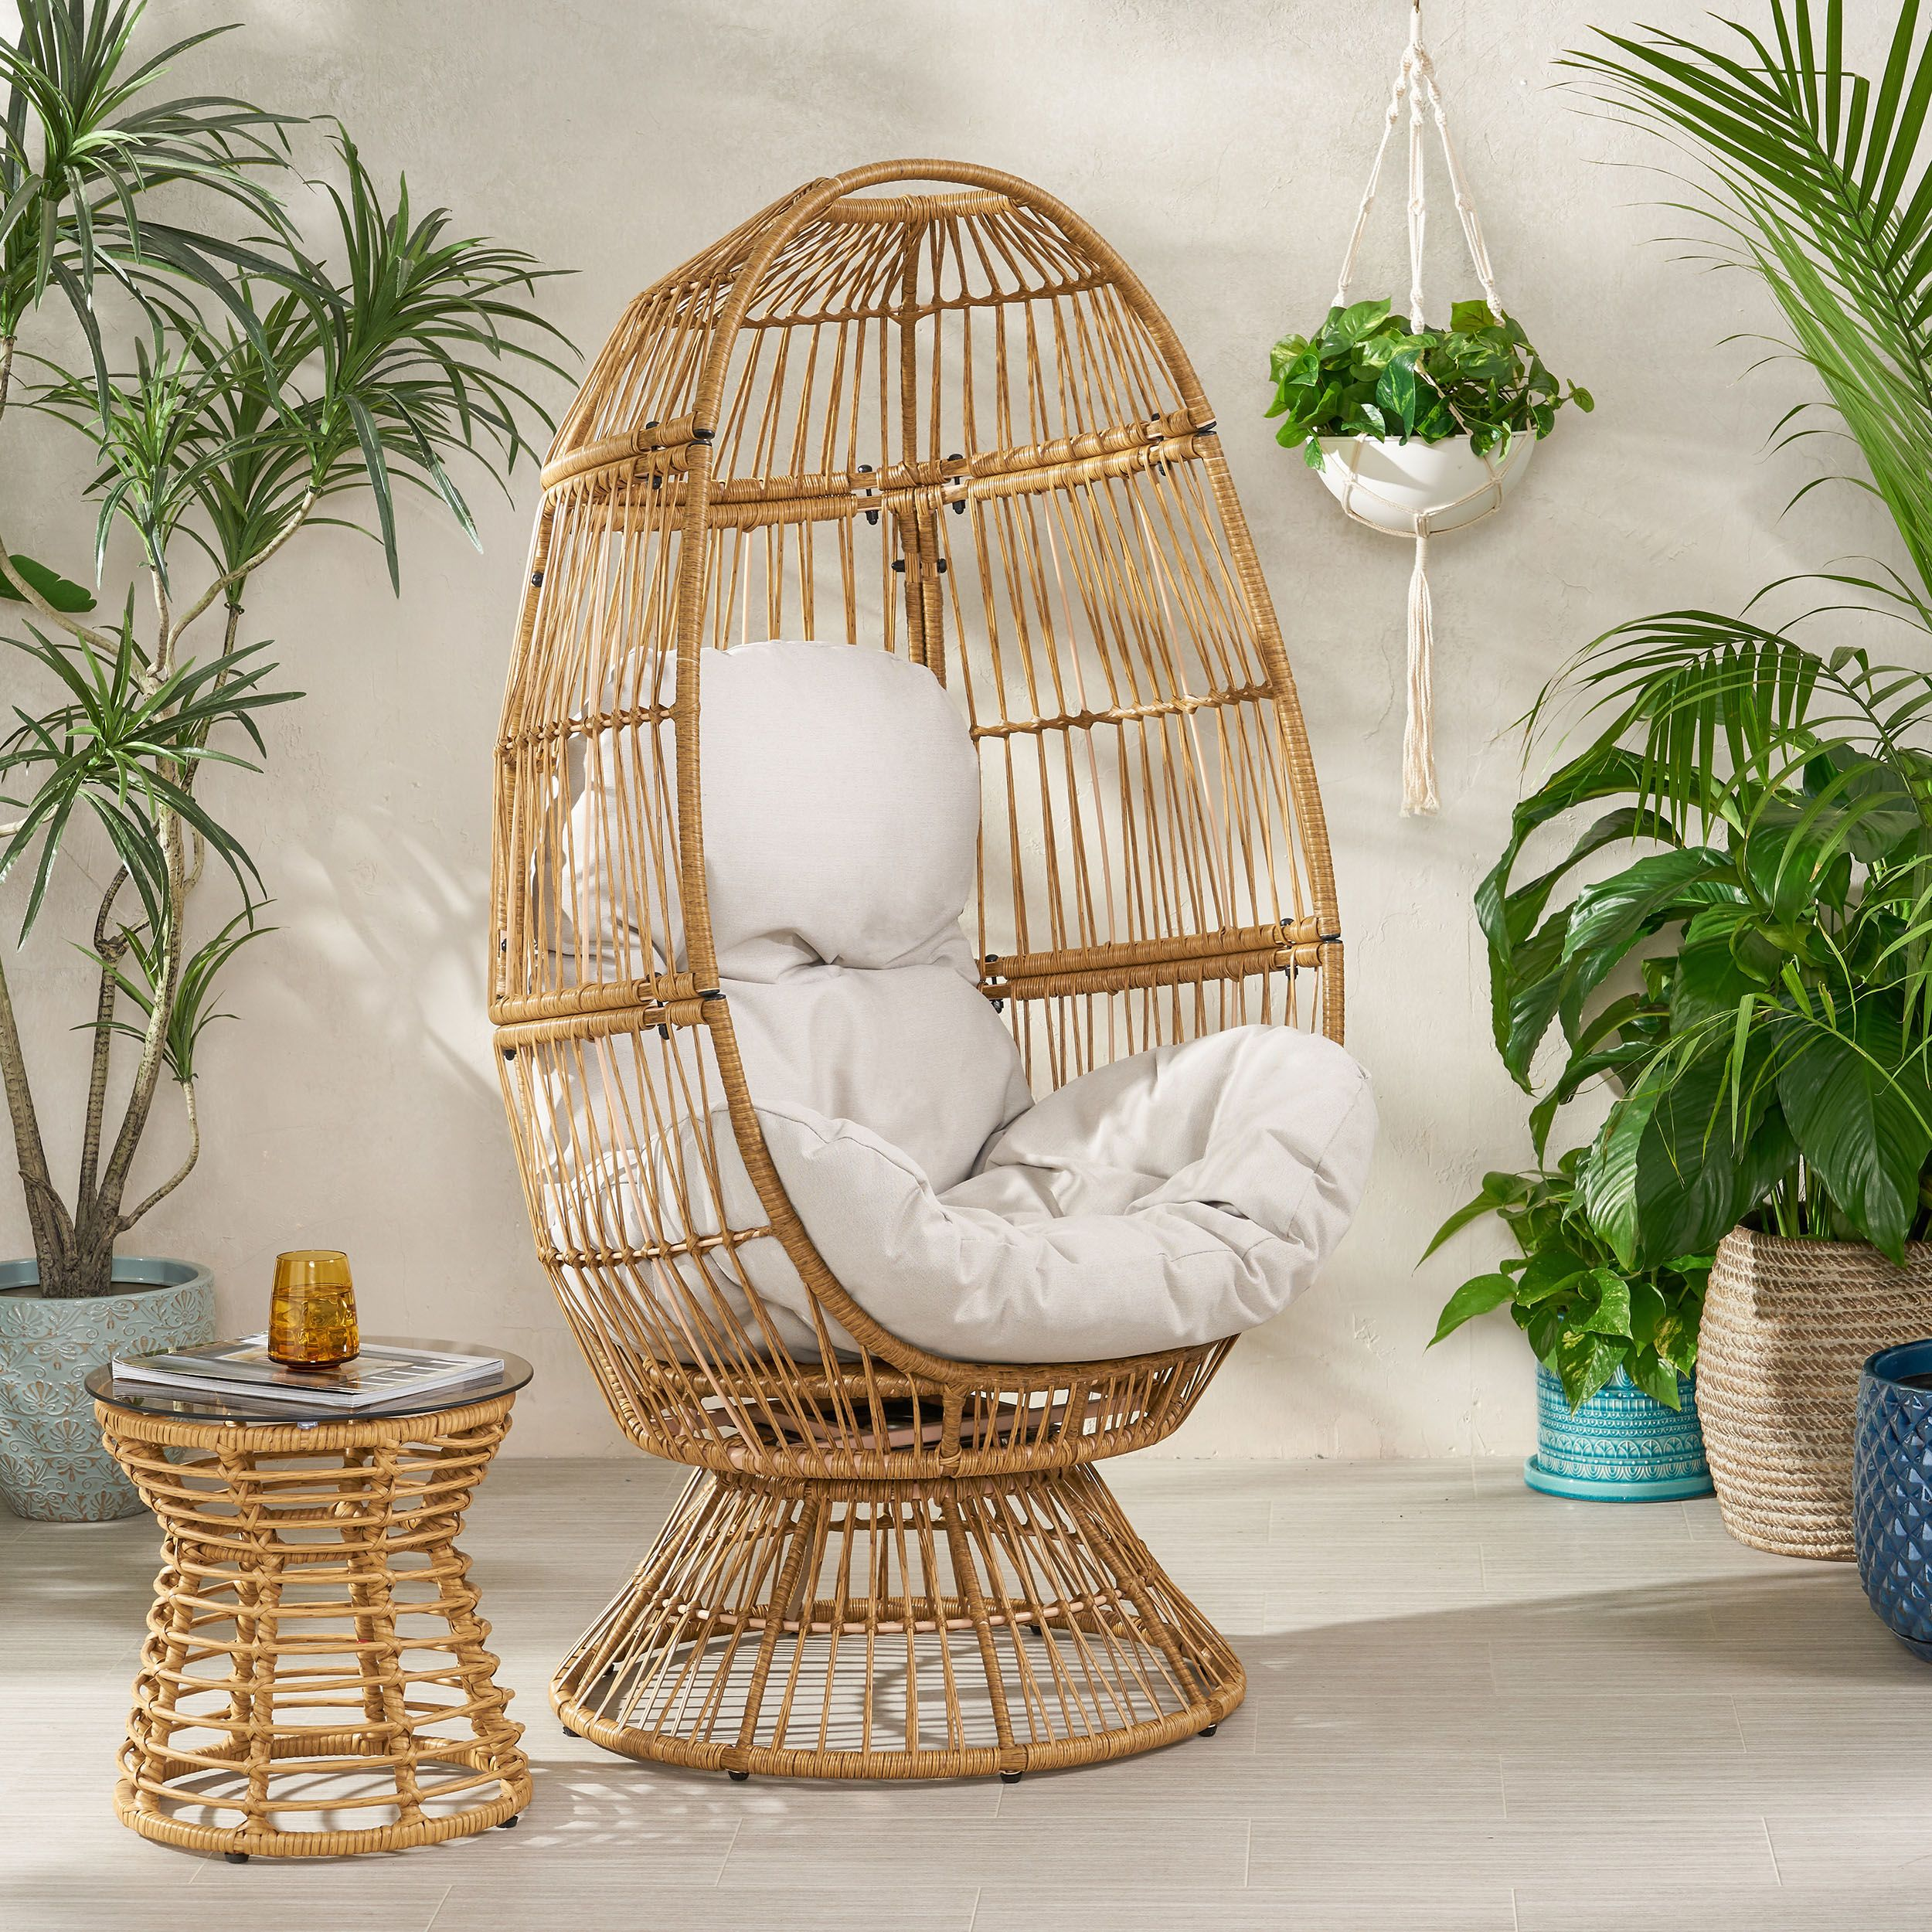 Adaline outdoor wicker swivel egg chair with cushion